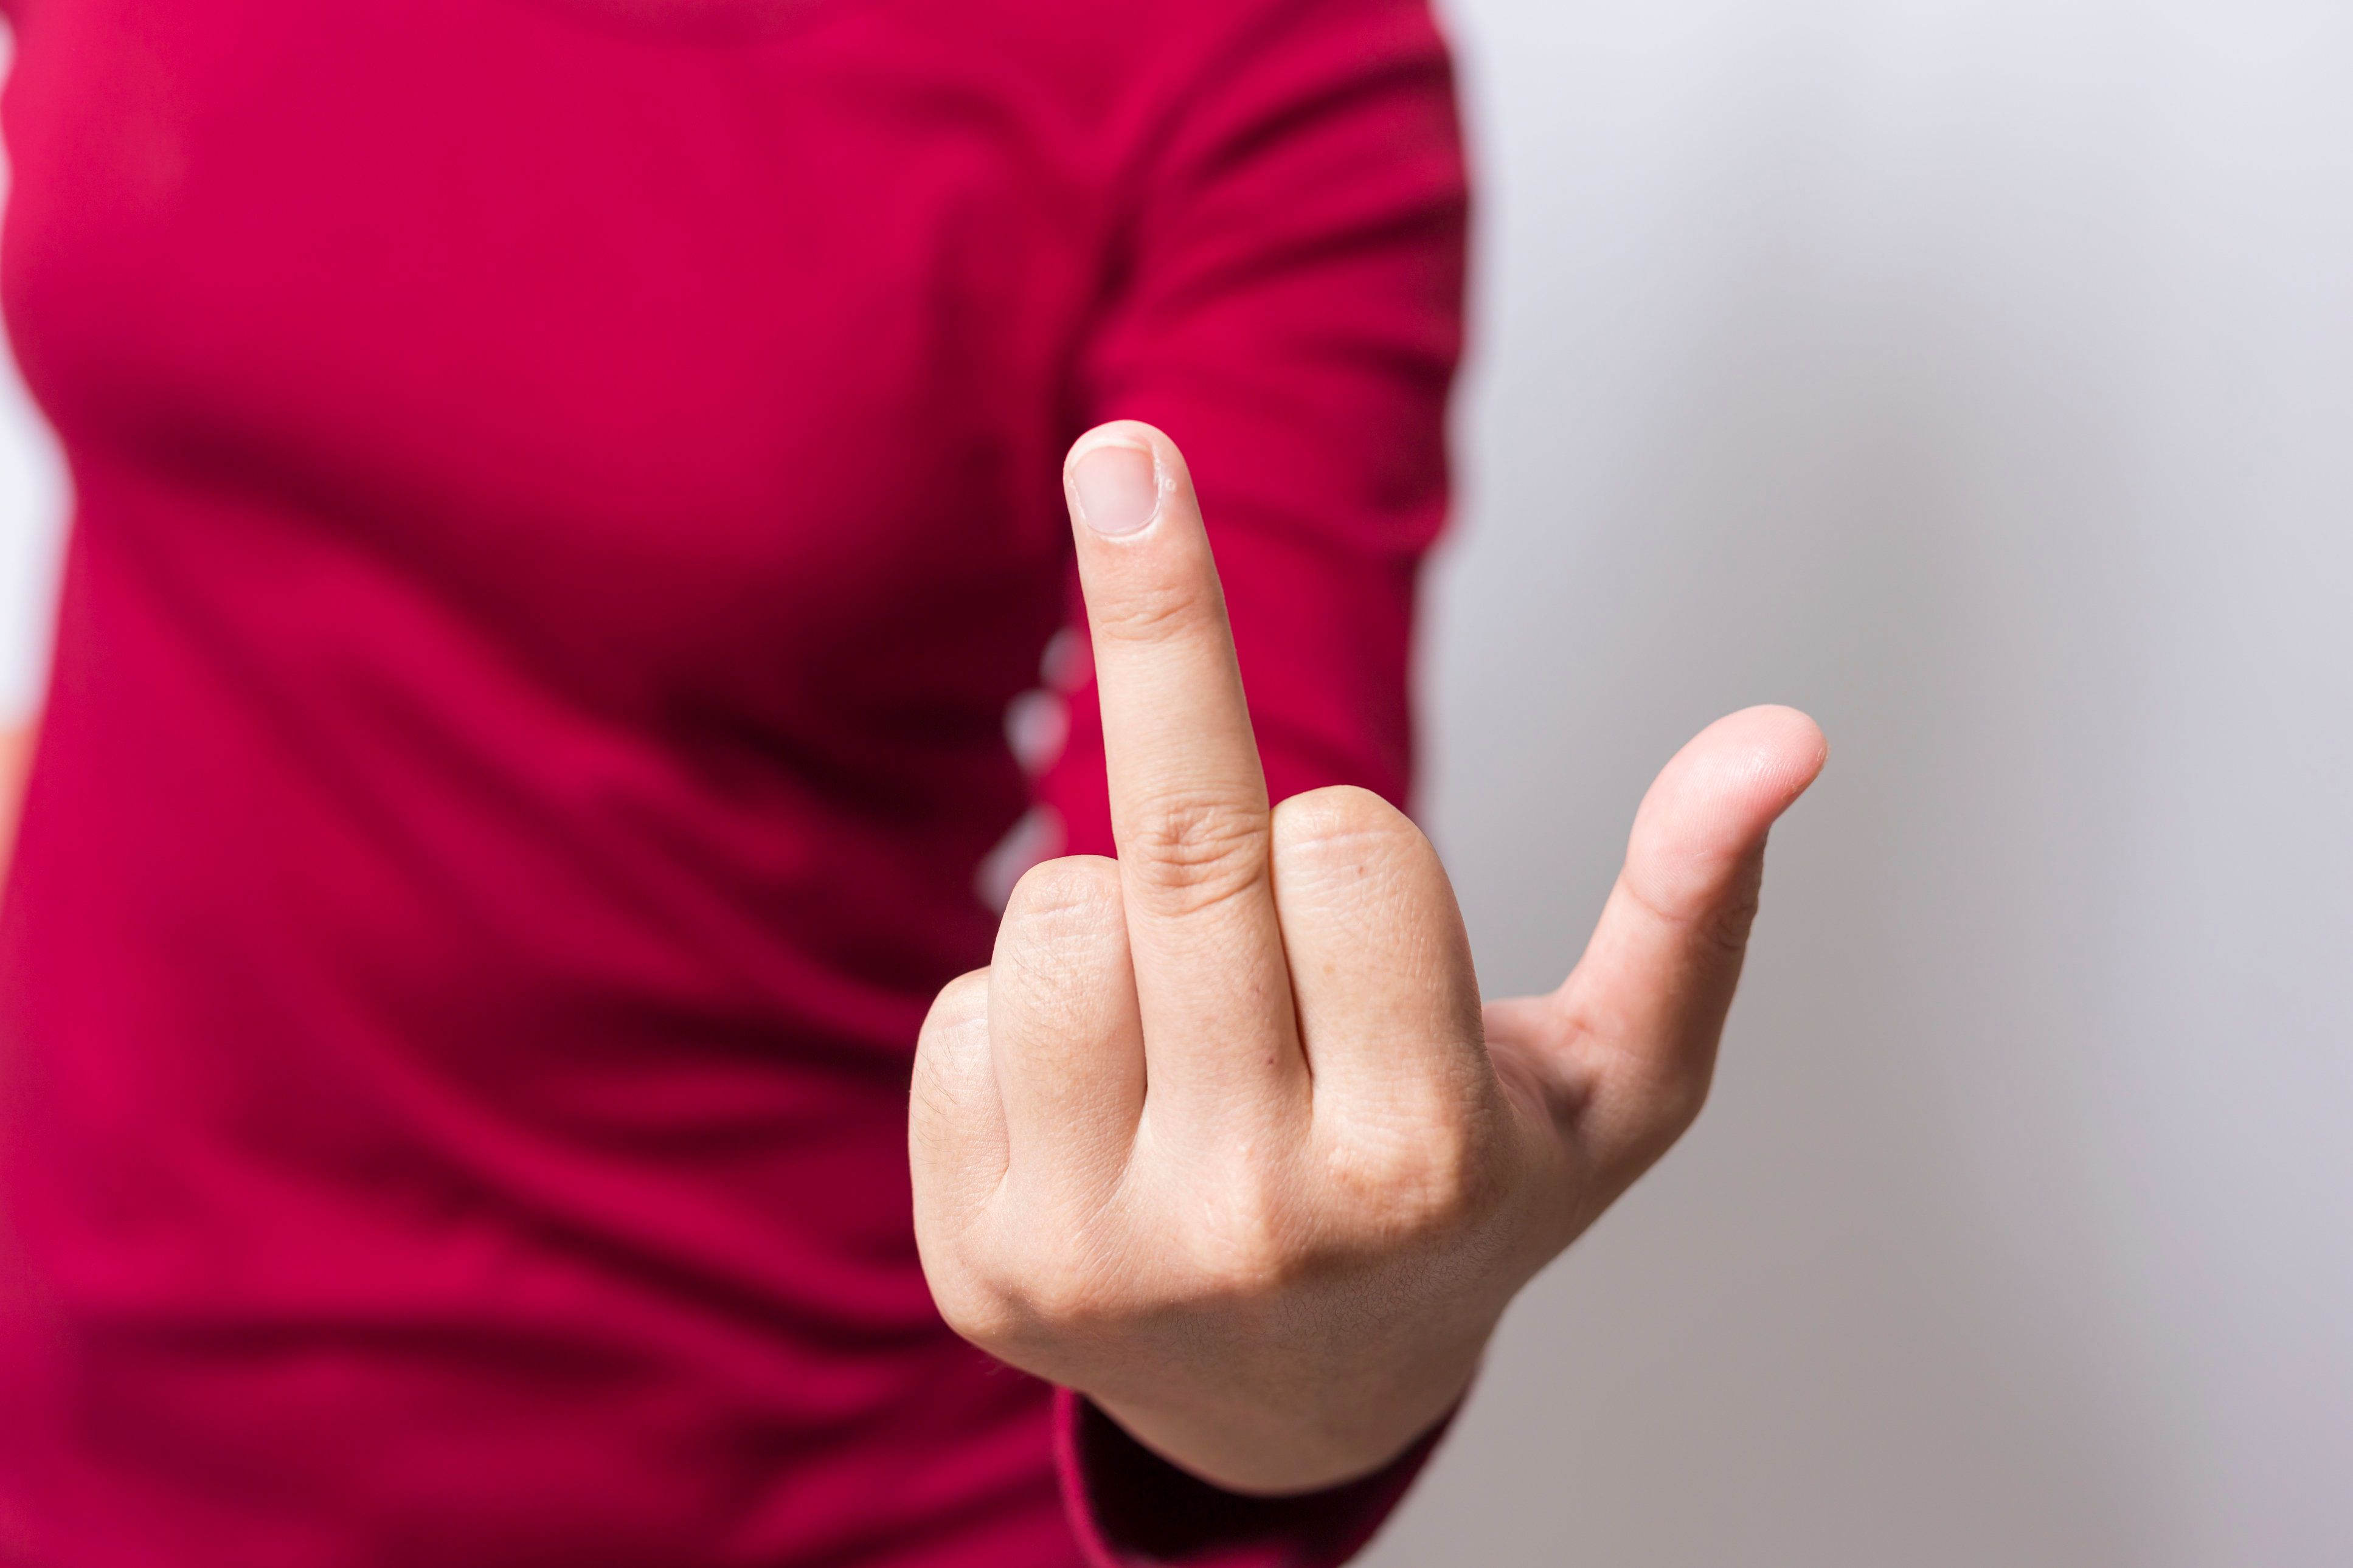 Bad woman is showing fuck off with the middle finger